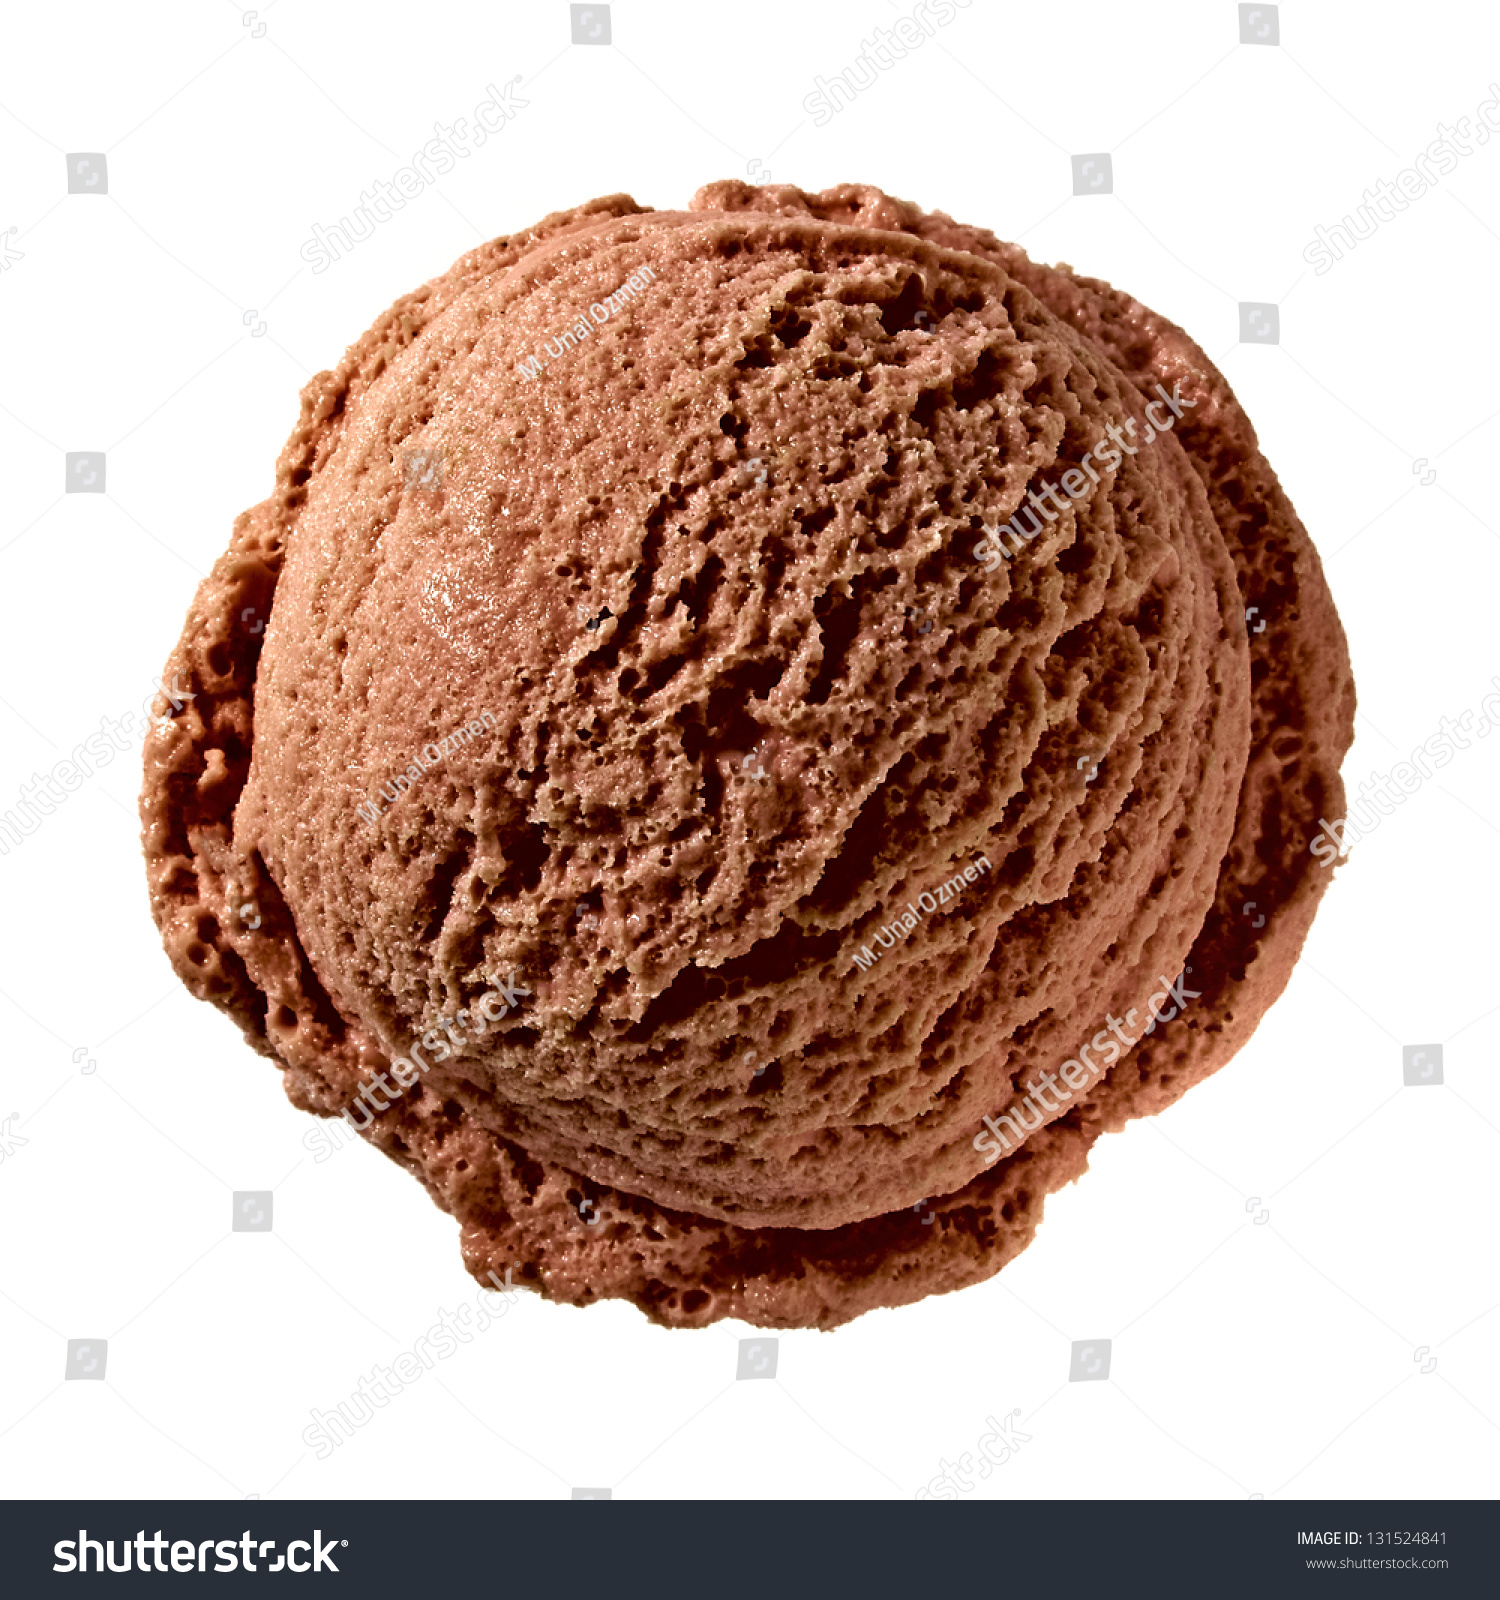 chocolate ice cream scoop top on stock photo 131524841 shutterstock. Black Bedroom Furniture Sets. Home Design Ideas